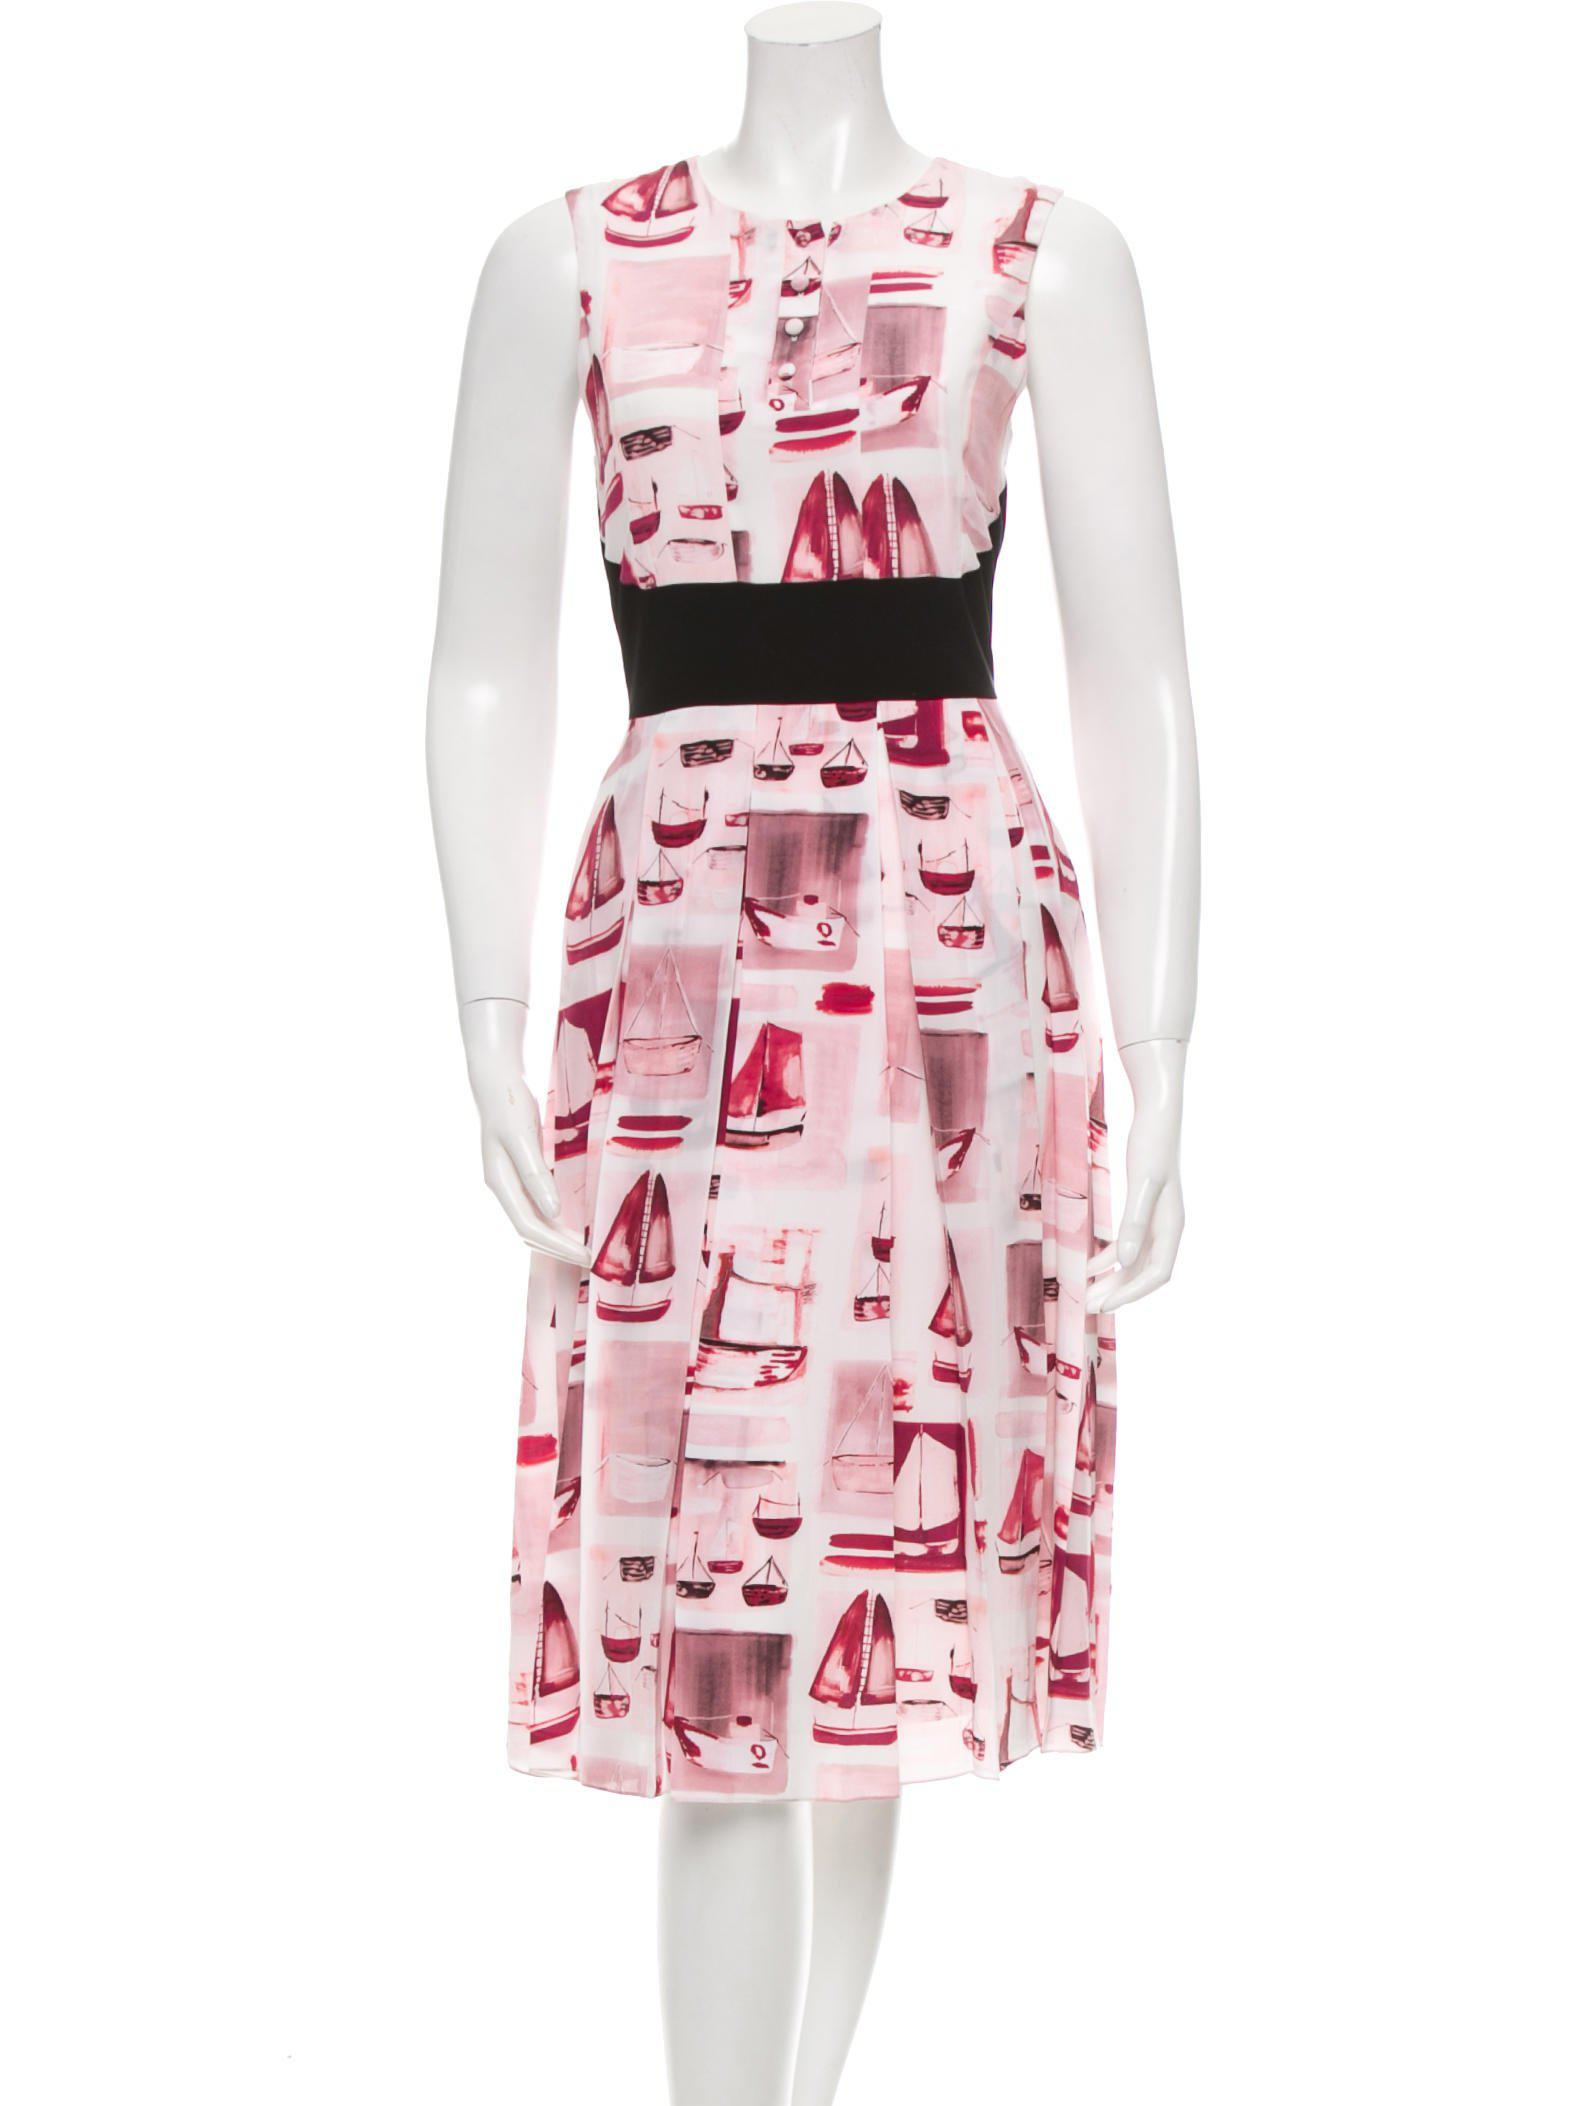 a352ede42b0 Lyst - Prabal Gurung Silk Boat Print Dress W  Tags in Pink